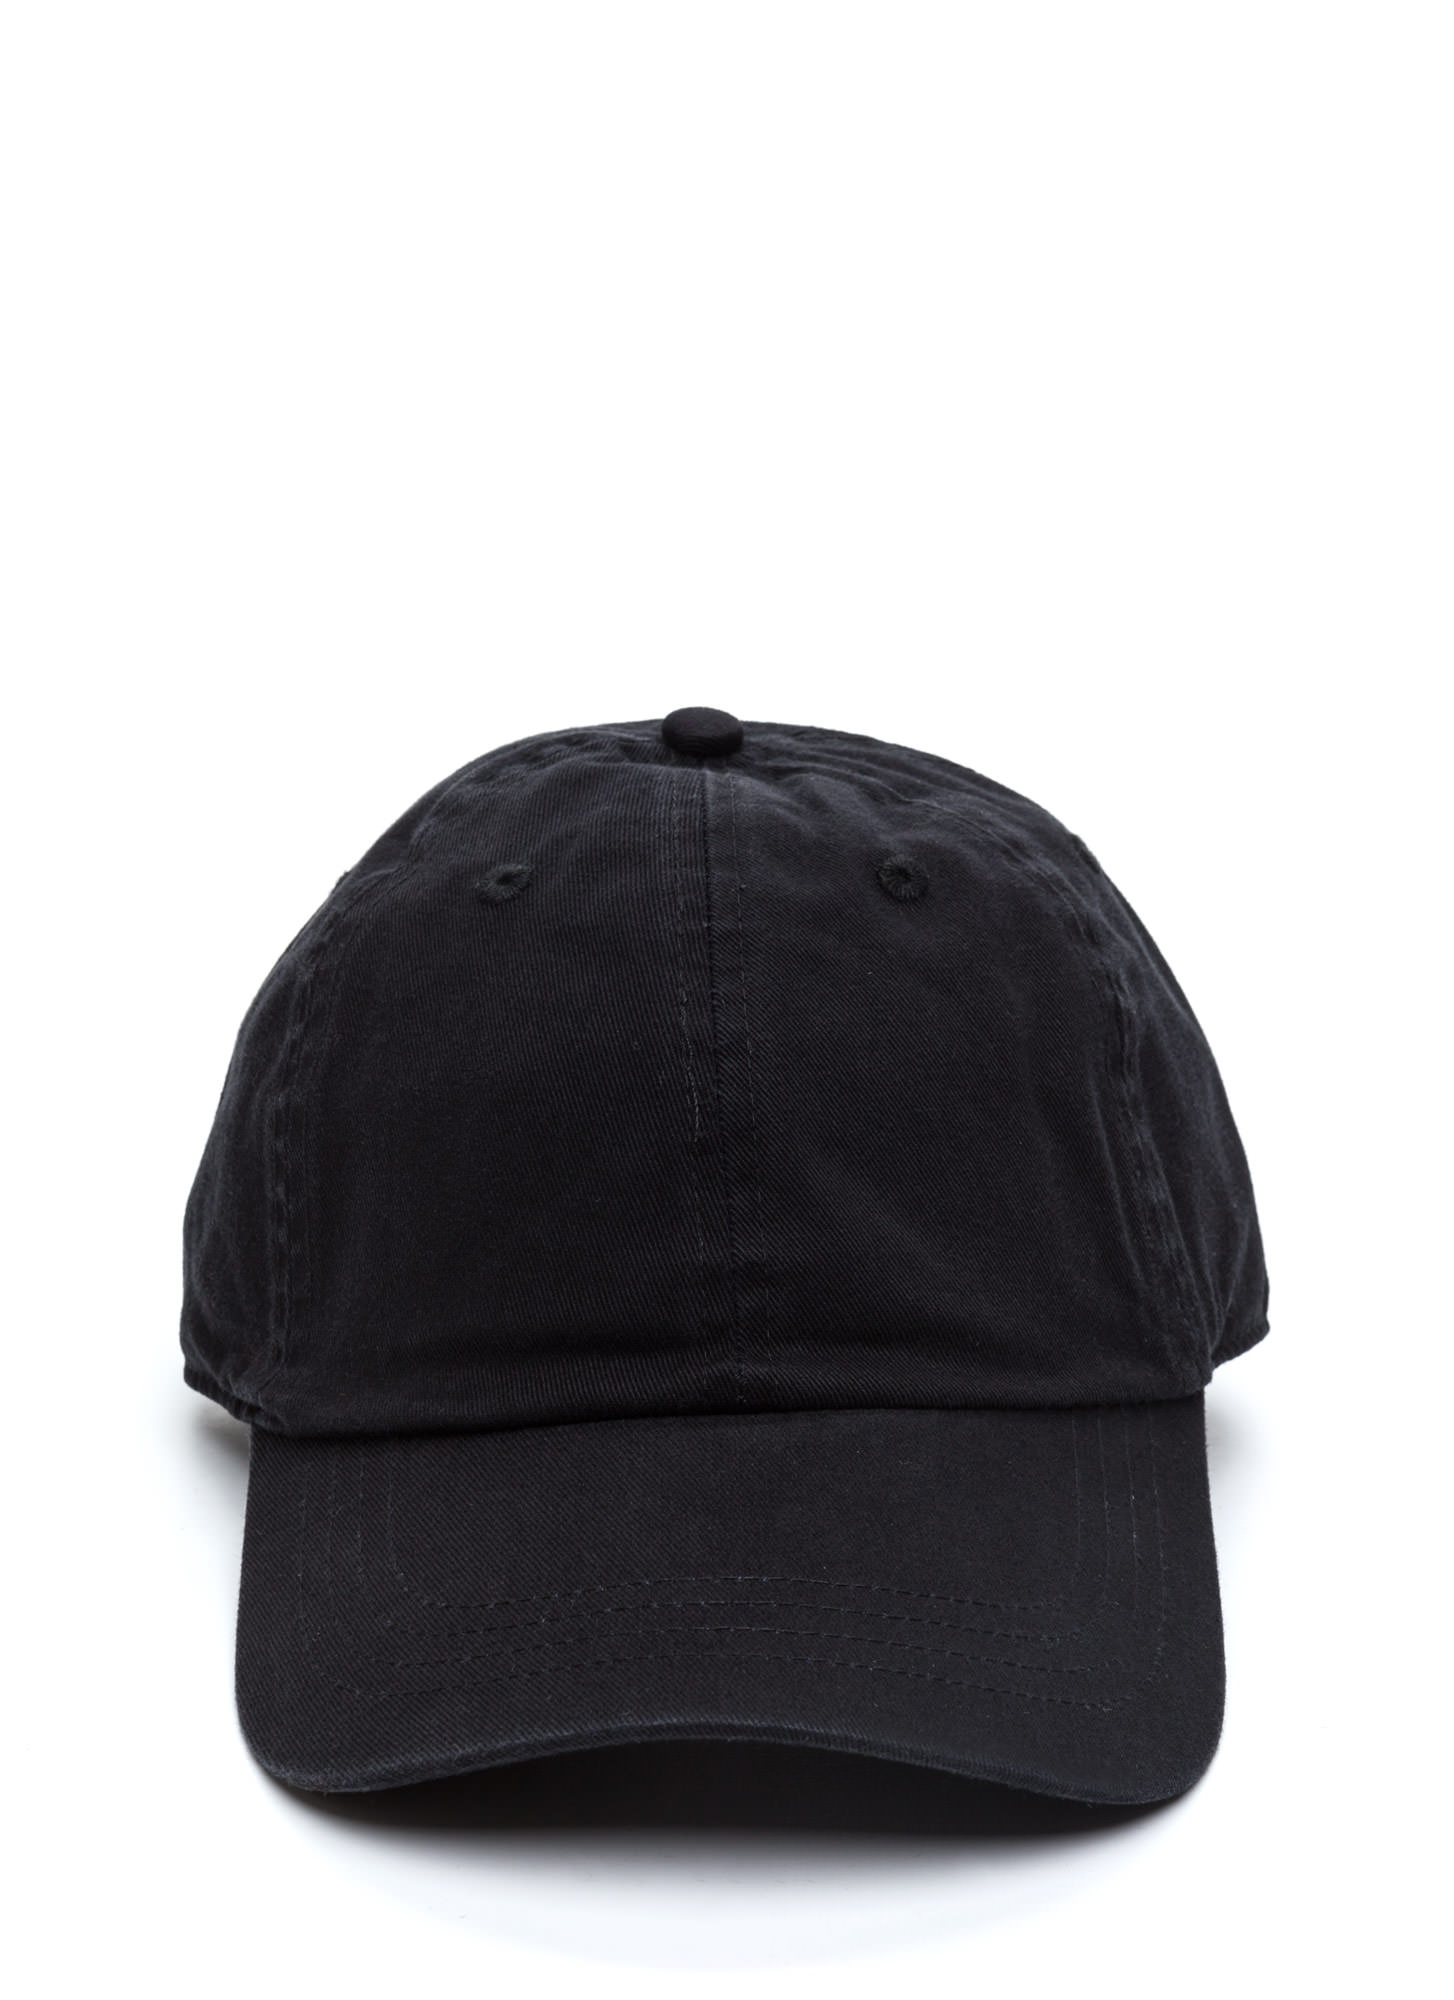 Not A Player Baseball Cap BLACK